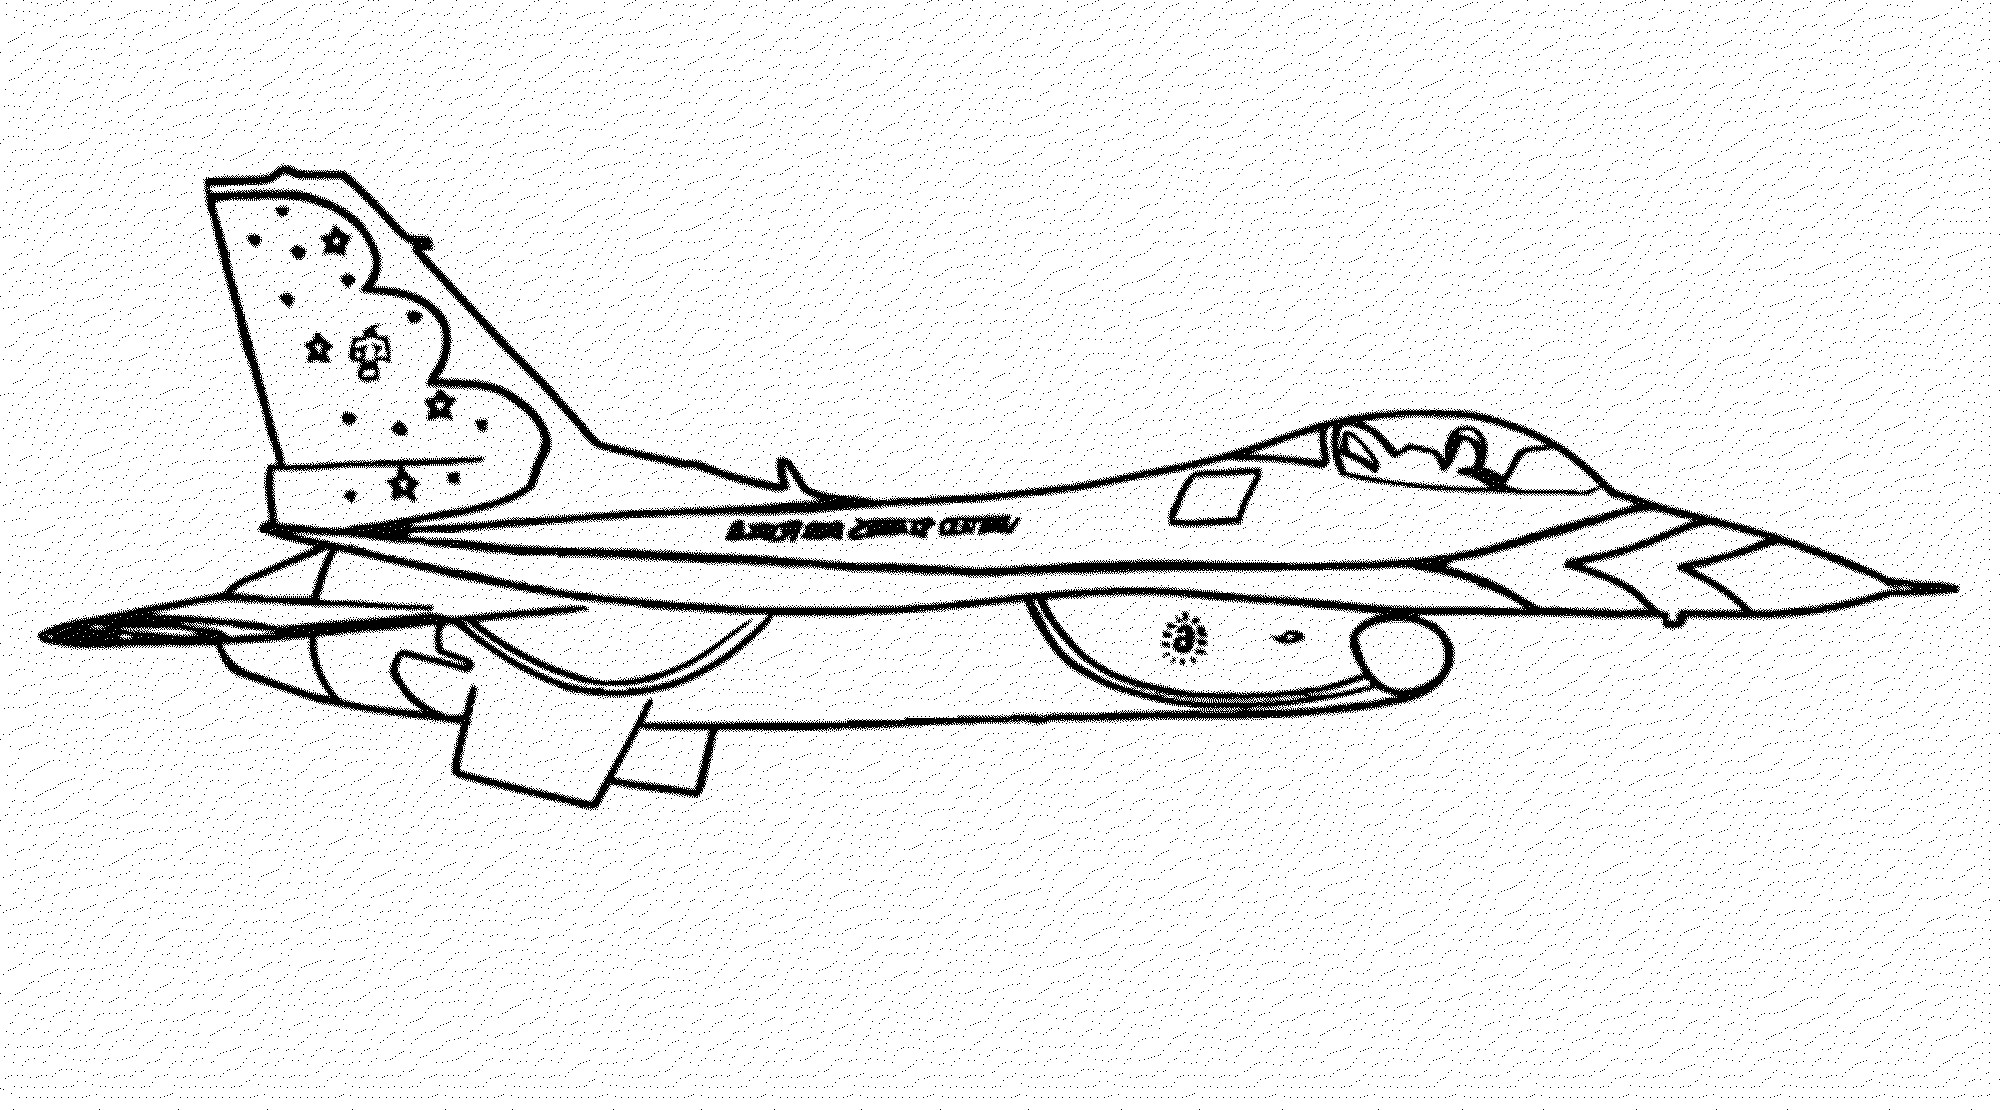 Airplane Coloring Pages Army Airplane Coloring Pages Png Ssl 1 Jet Telematik Institut